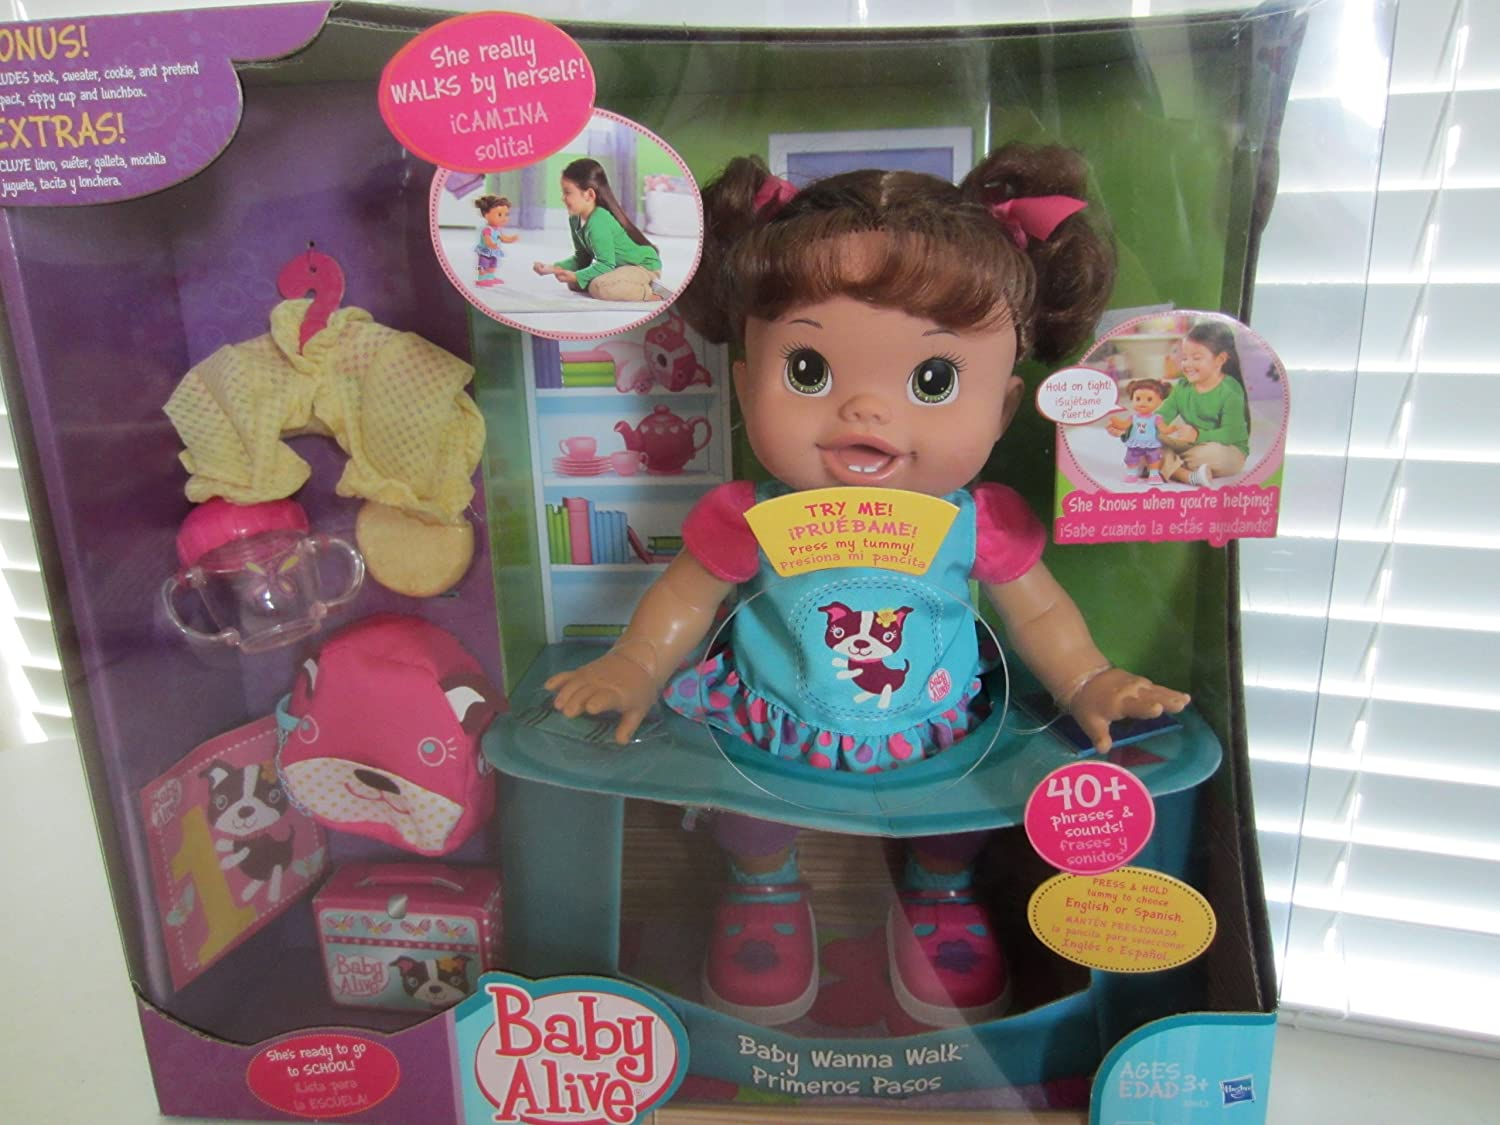 Amazon.com: Baby Alive Baby Wanna Walk, Brunette Doll WITH SPECIAL BONUS PACK: Toys & Games